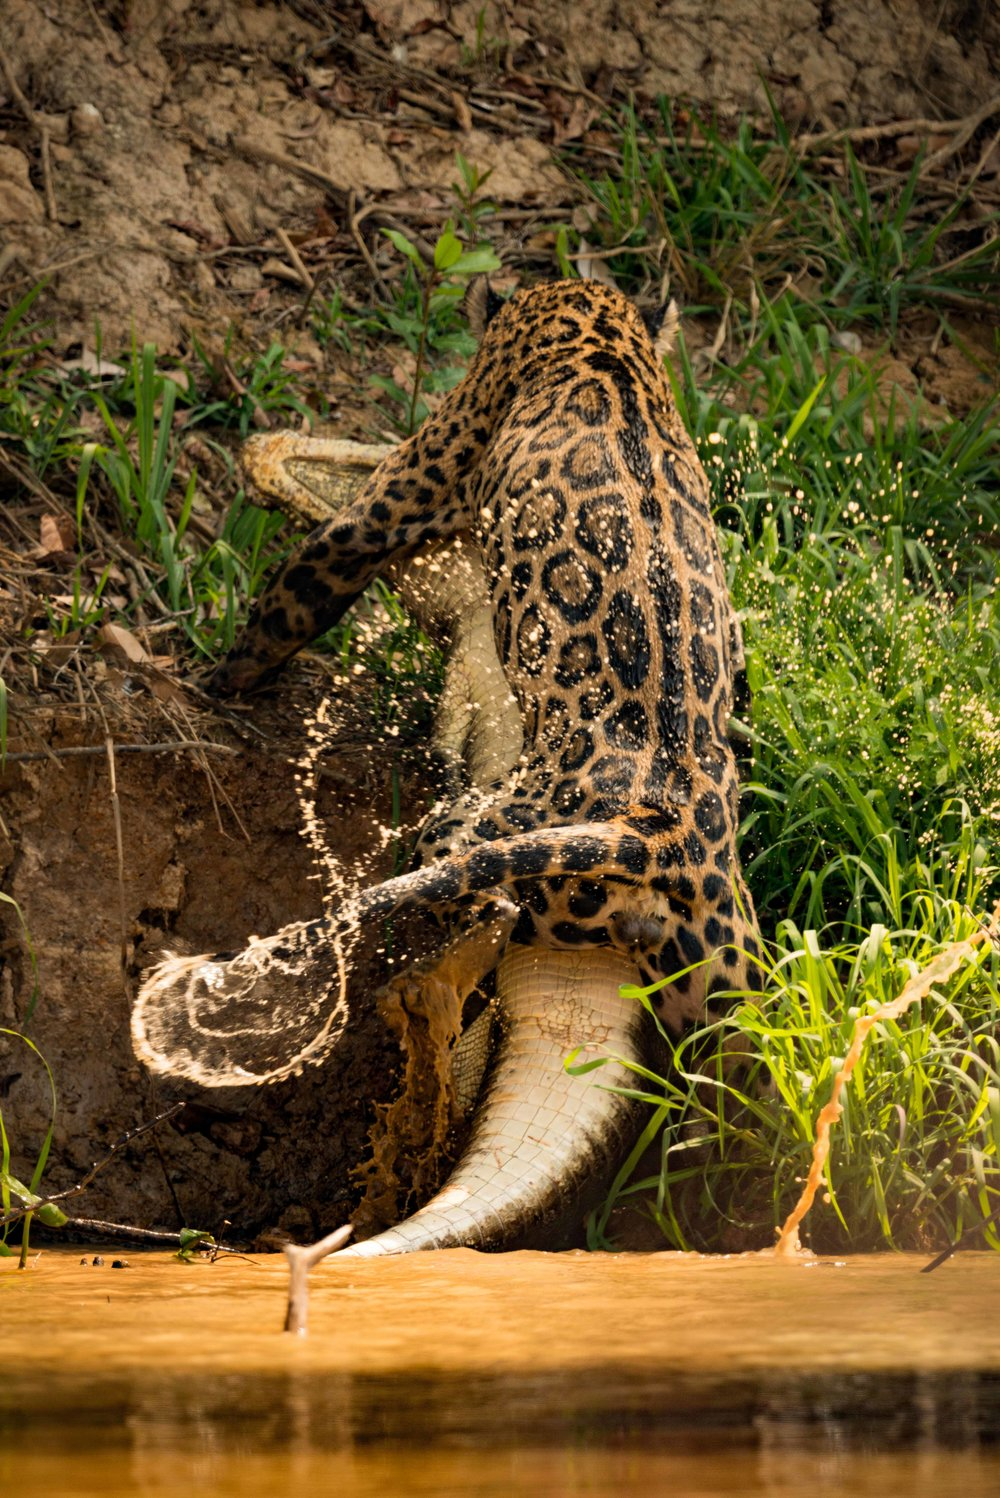 Jaguar dragging yacare caiman along river bank